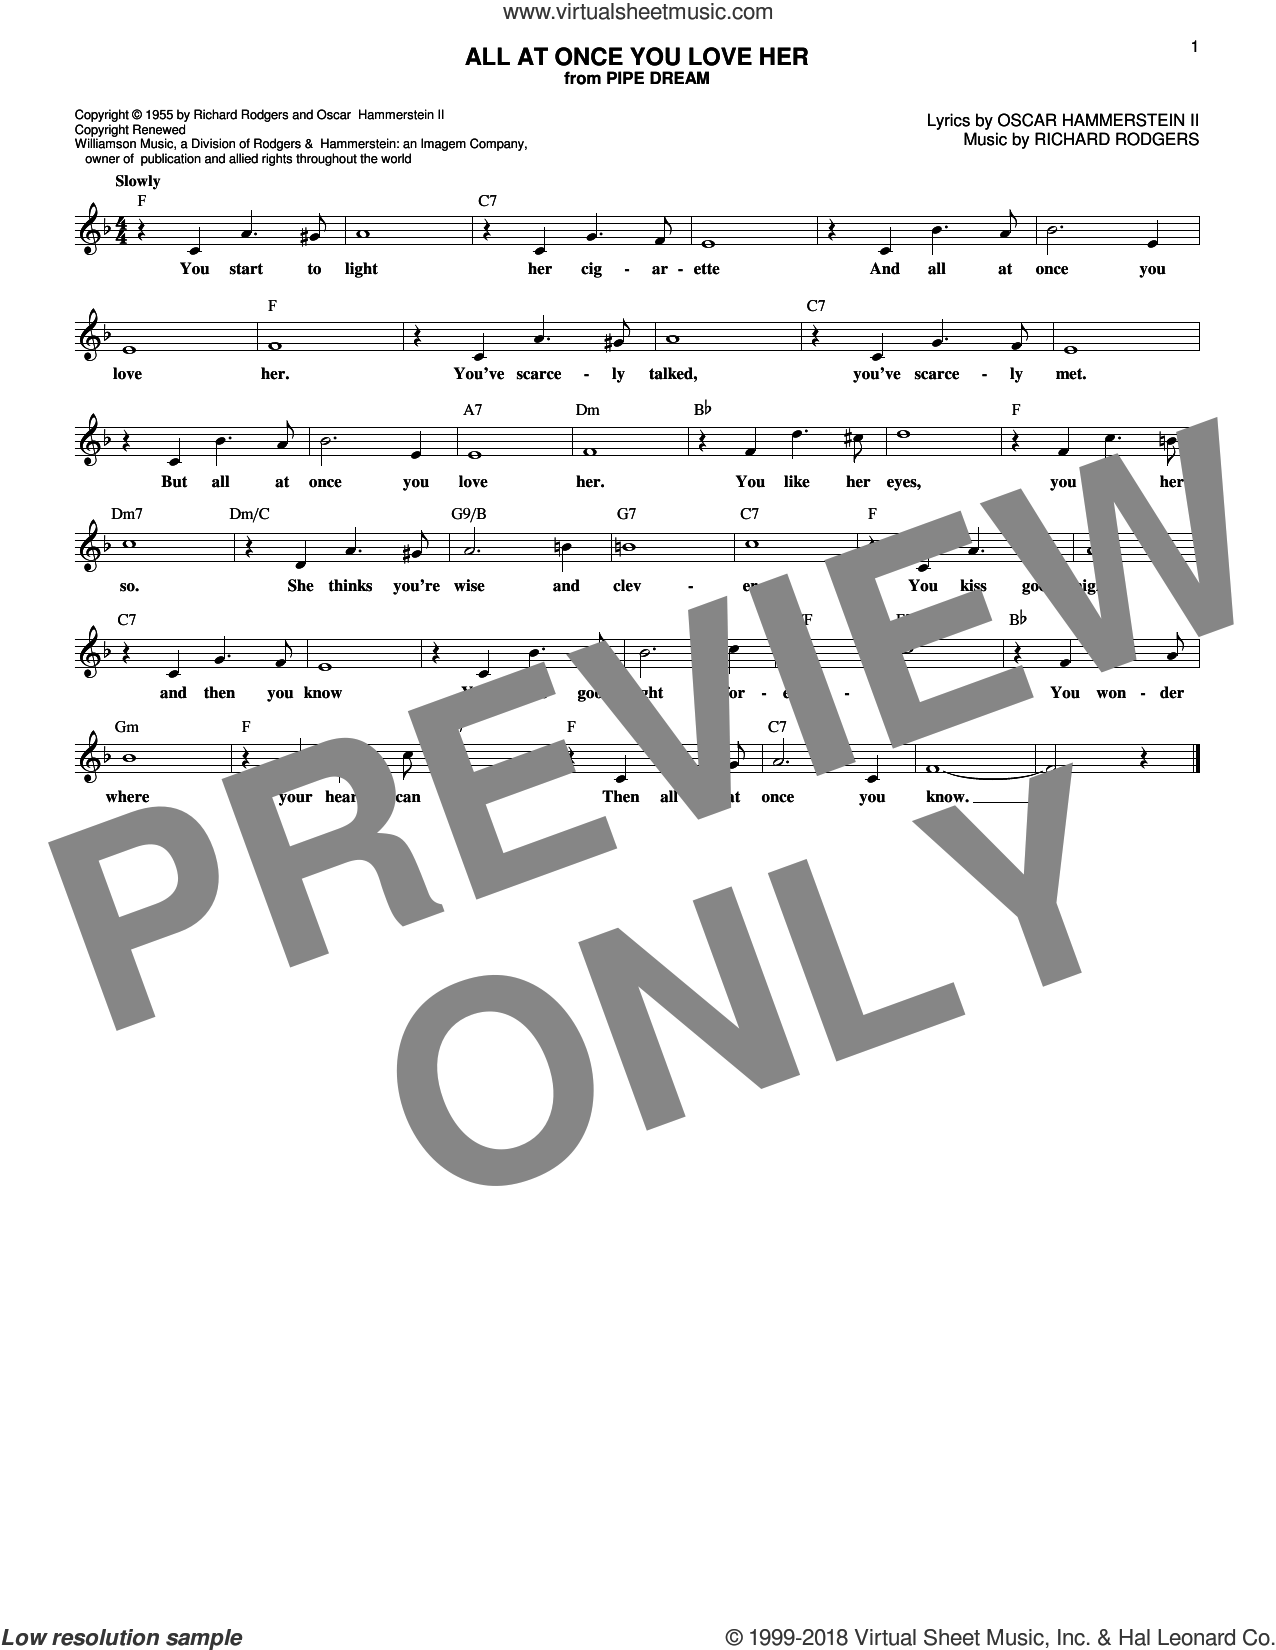 All At Once You Love Her sheet music for voice and other instruments (fake book) by Rodgers & Hammerstein, Perry Como, Oscar II Hammerstein and Richard Rodgers, intermediate skill level